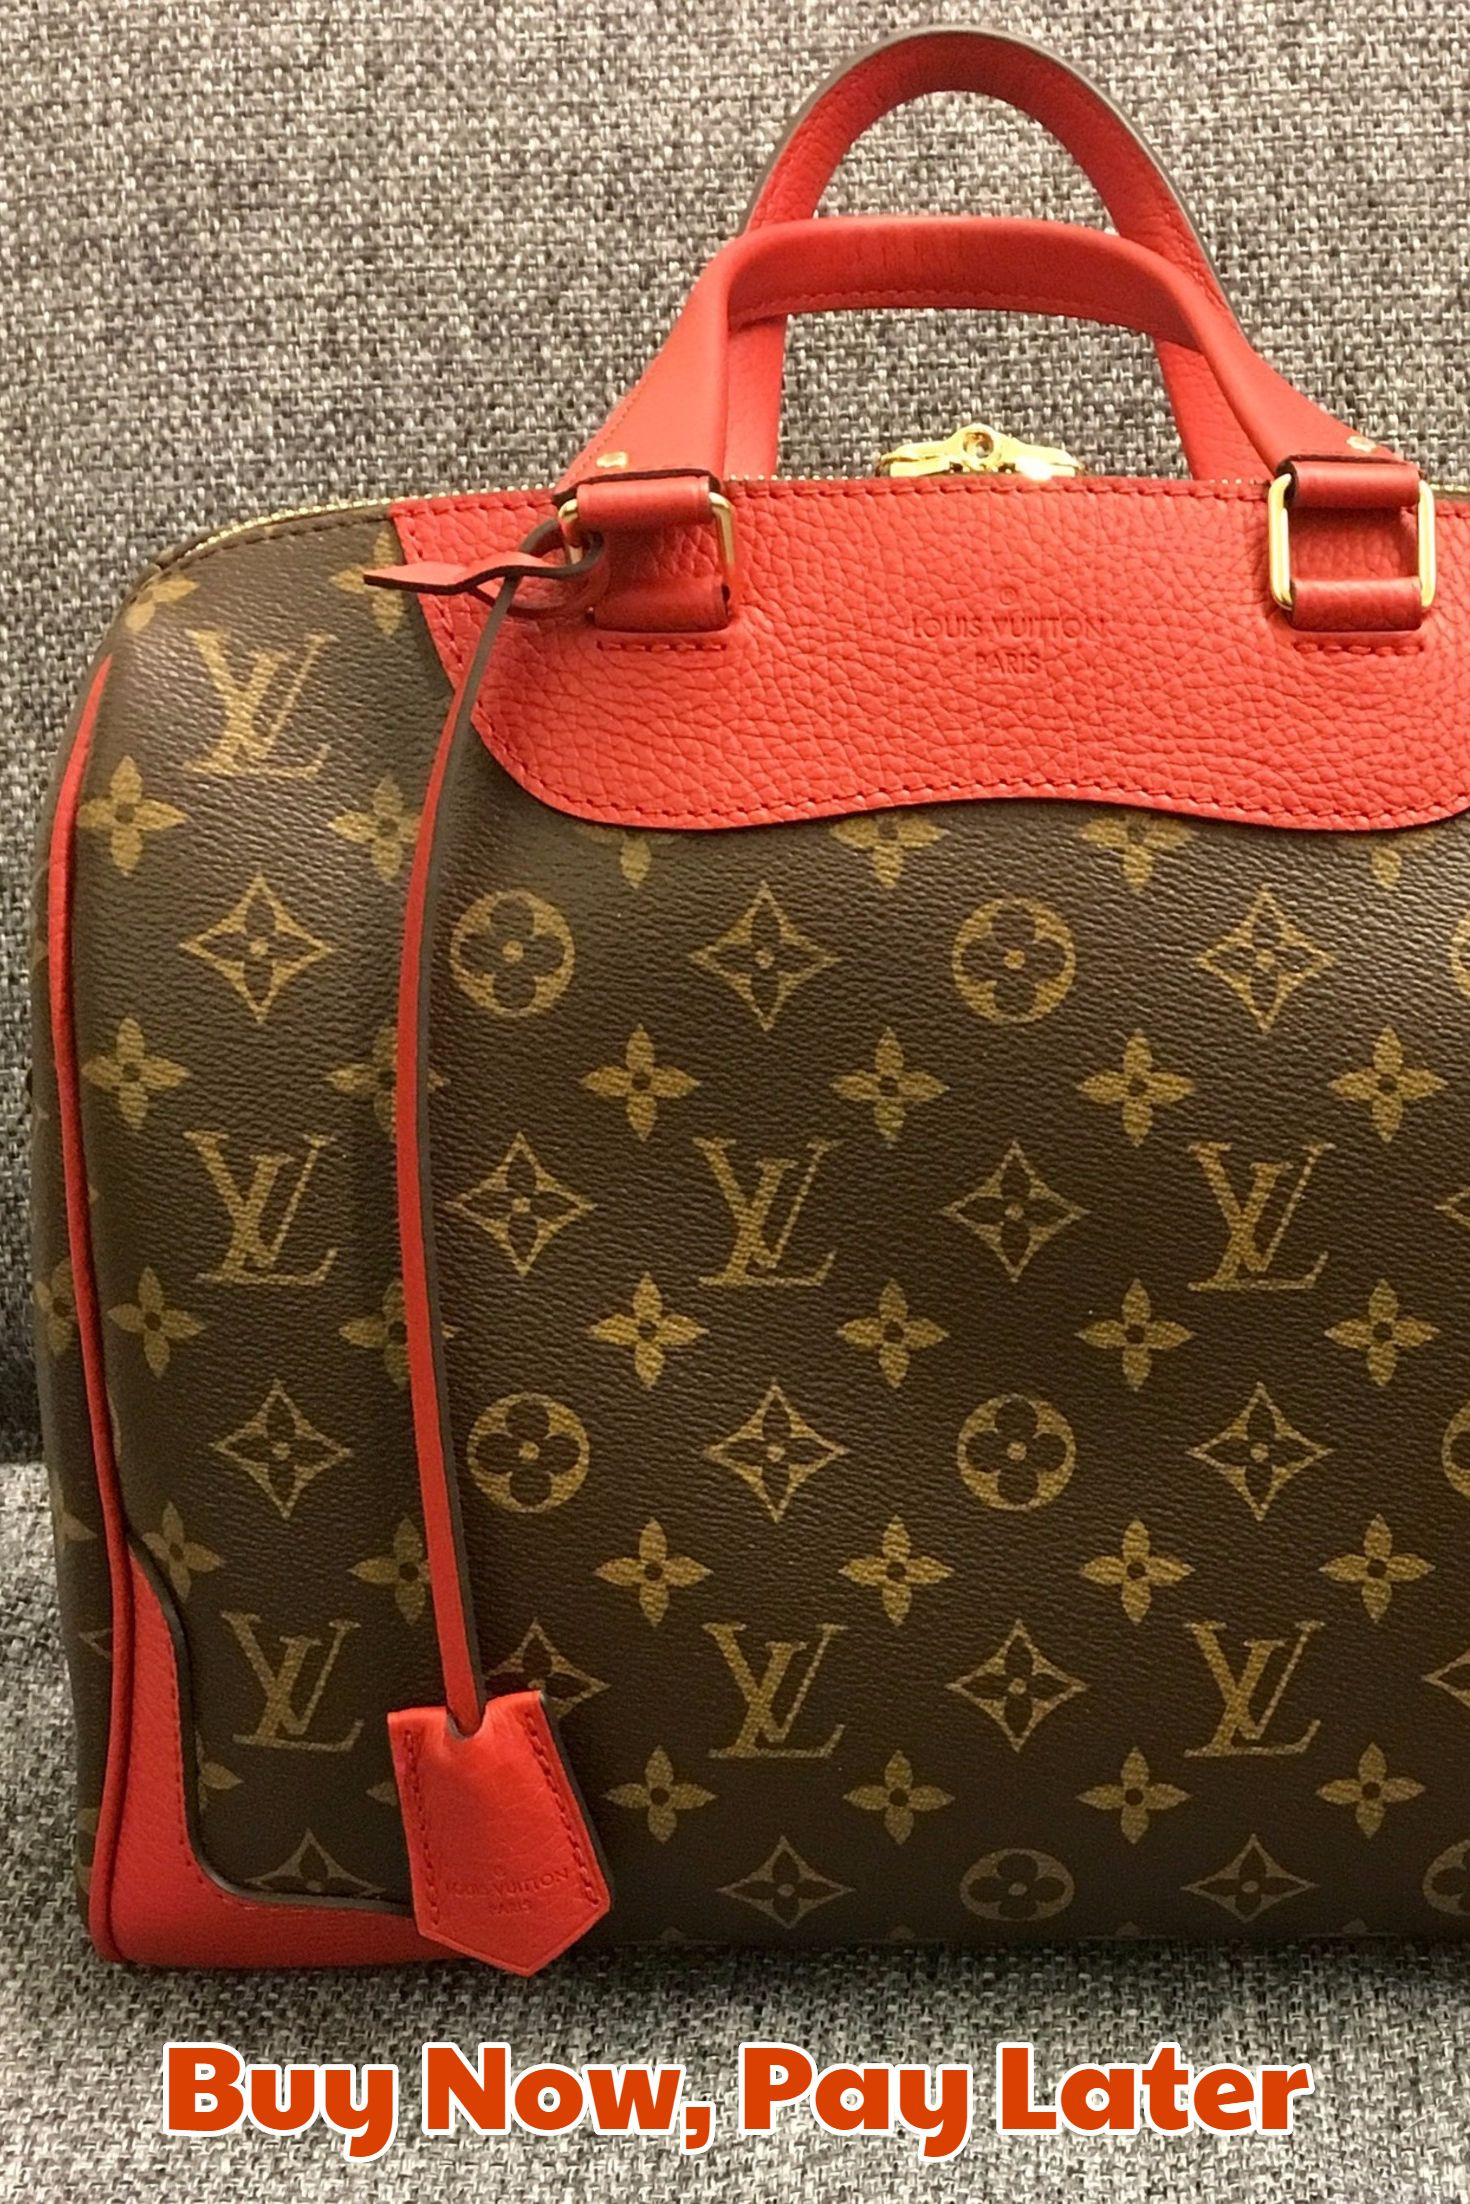 I Think Every S Dream Is To Own A Real Louis Vuitton Handbag But The Cost Of New Bag Costs More Than Most People Pay For Three Months